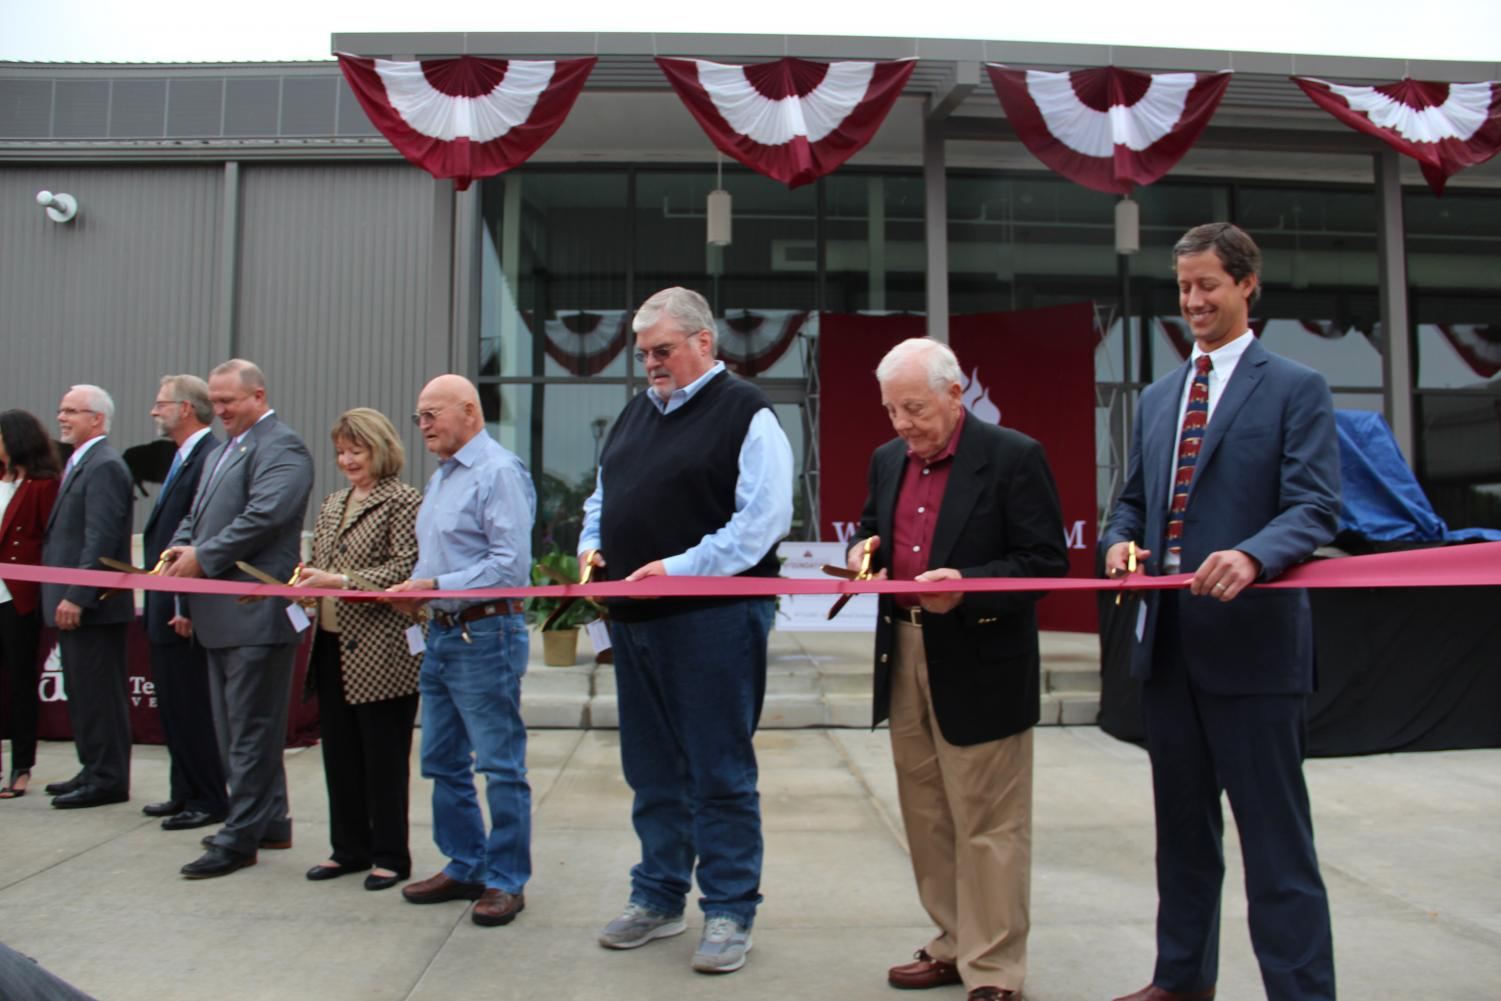 WTAMU is put on the map by the opening of the New Agricultural Sciences Complex and celebrated by the Ribbon-Cutting Ceremony and Open House.